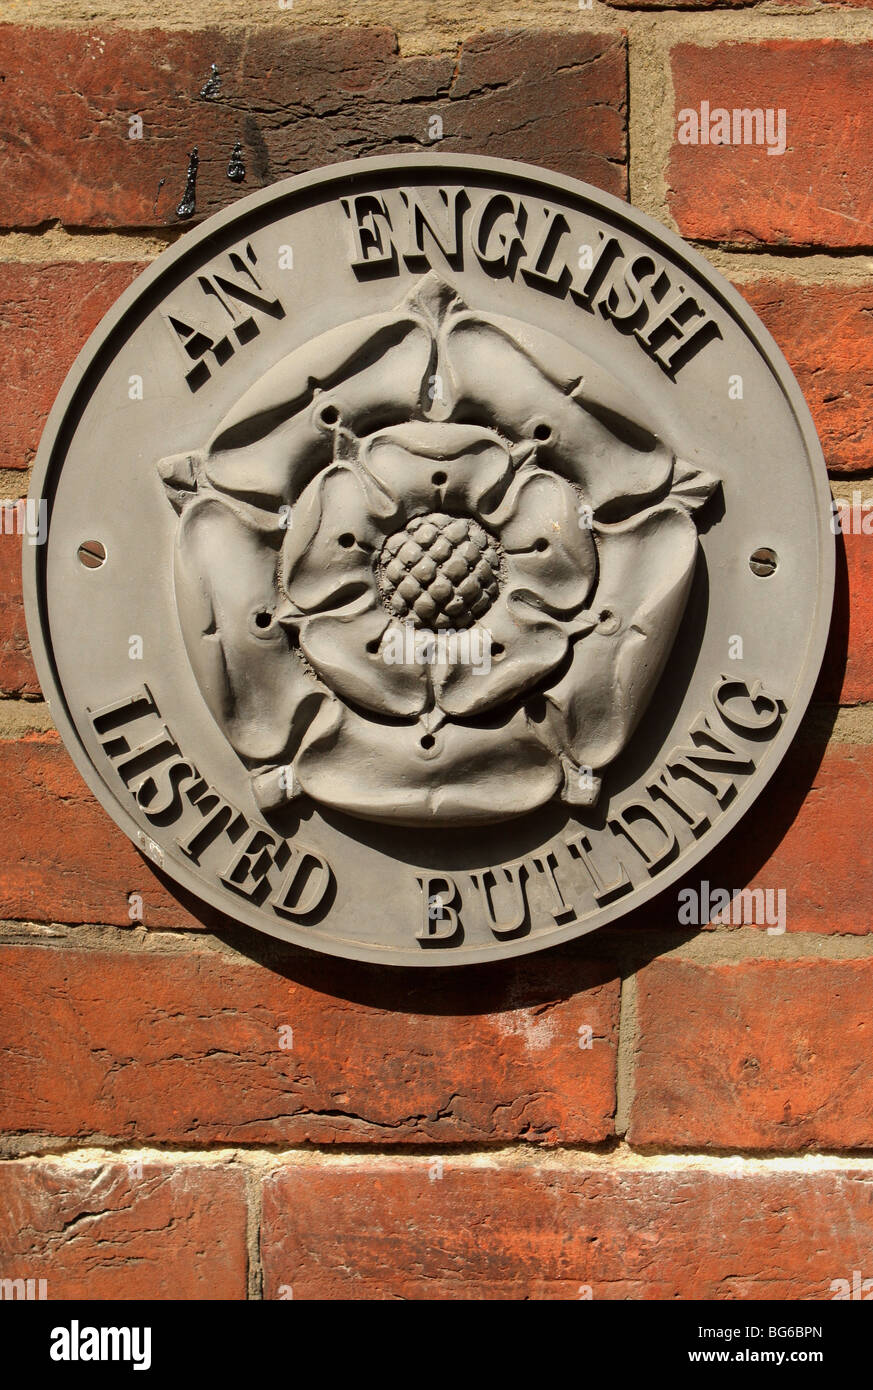 English Listed Building Plaque - Stock Image